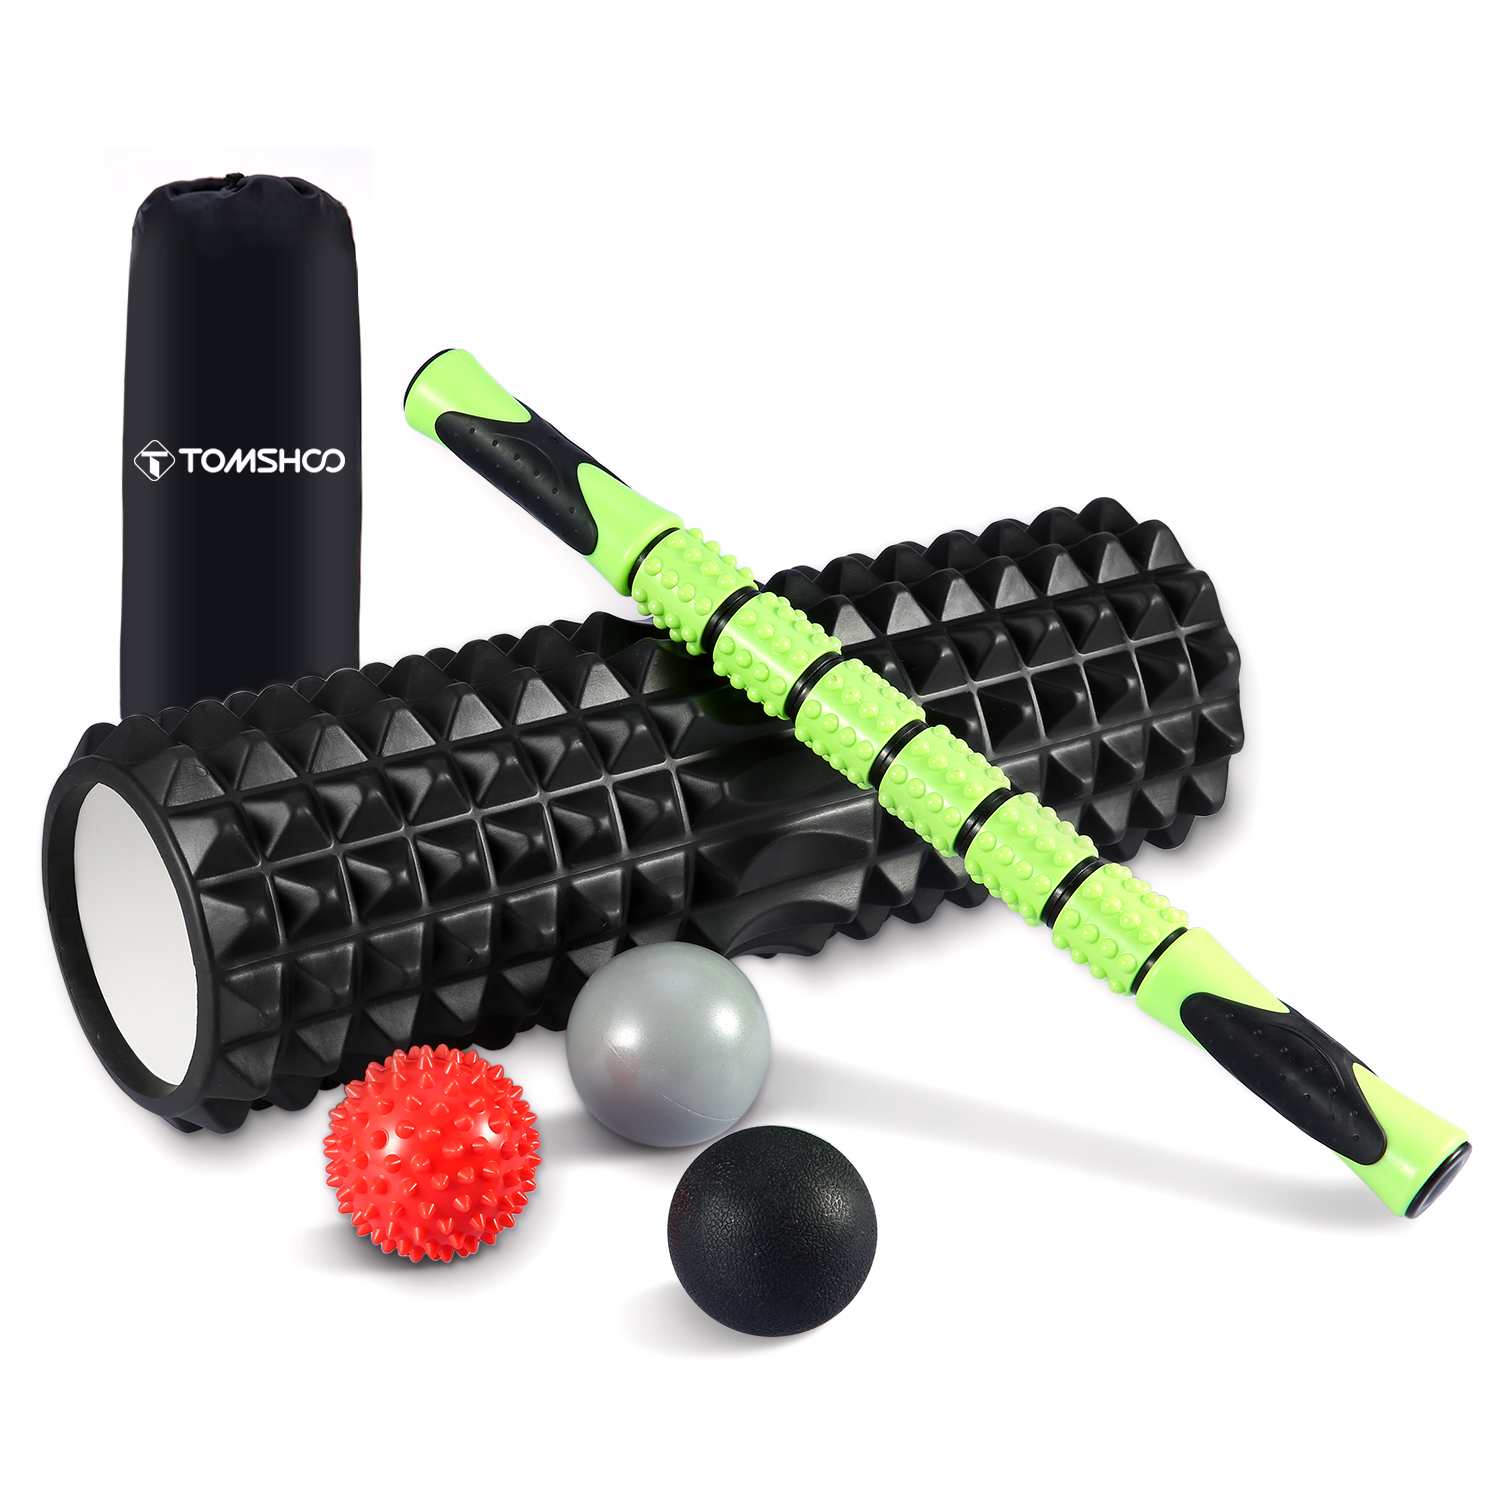 TOMSHOO 6-in-1 Fitness Massage Roller Kit 18 Large Foam Muscle Roller Stick 3 Massage Balls Deep Tissue Back Physical Therapy 30cm 15cm electric vibration eva foam roller floating point fitness massage roller 3 speed adjustable for physical therapy